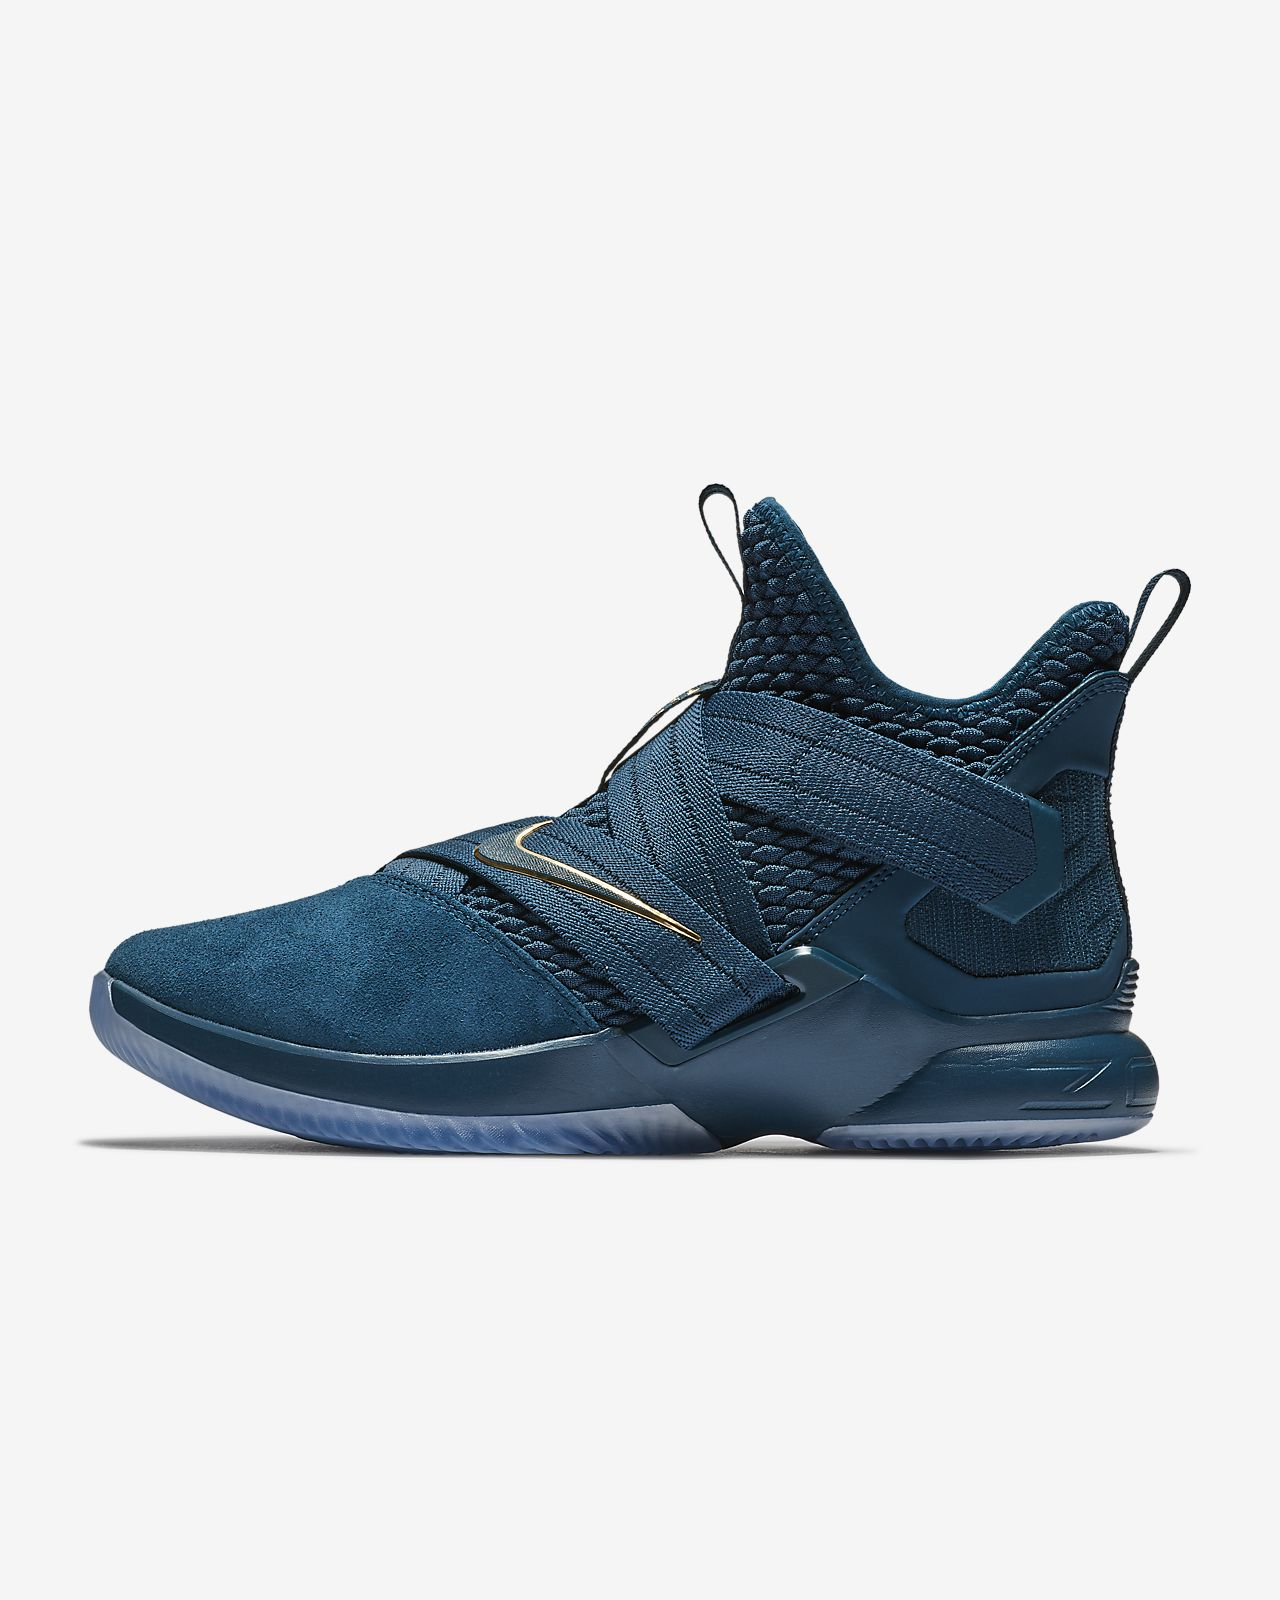 Chaussure de basketball LeBron Soldier 12 SFG